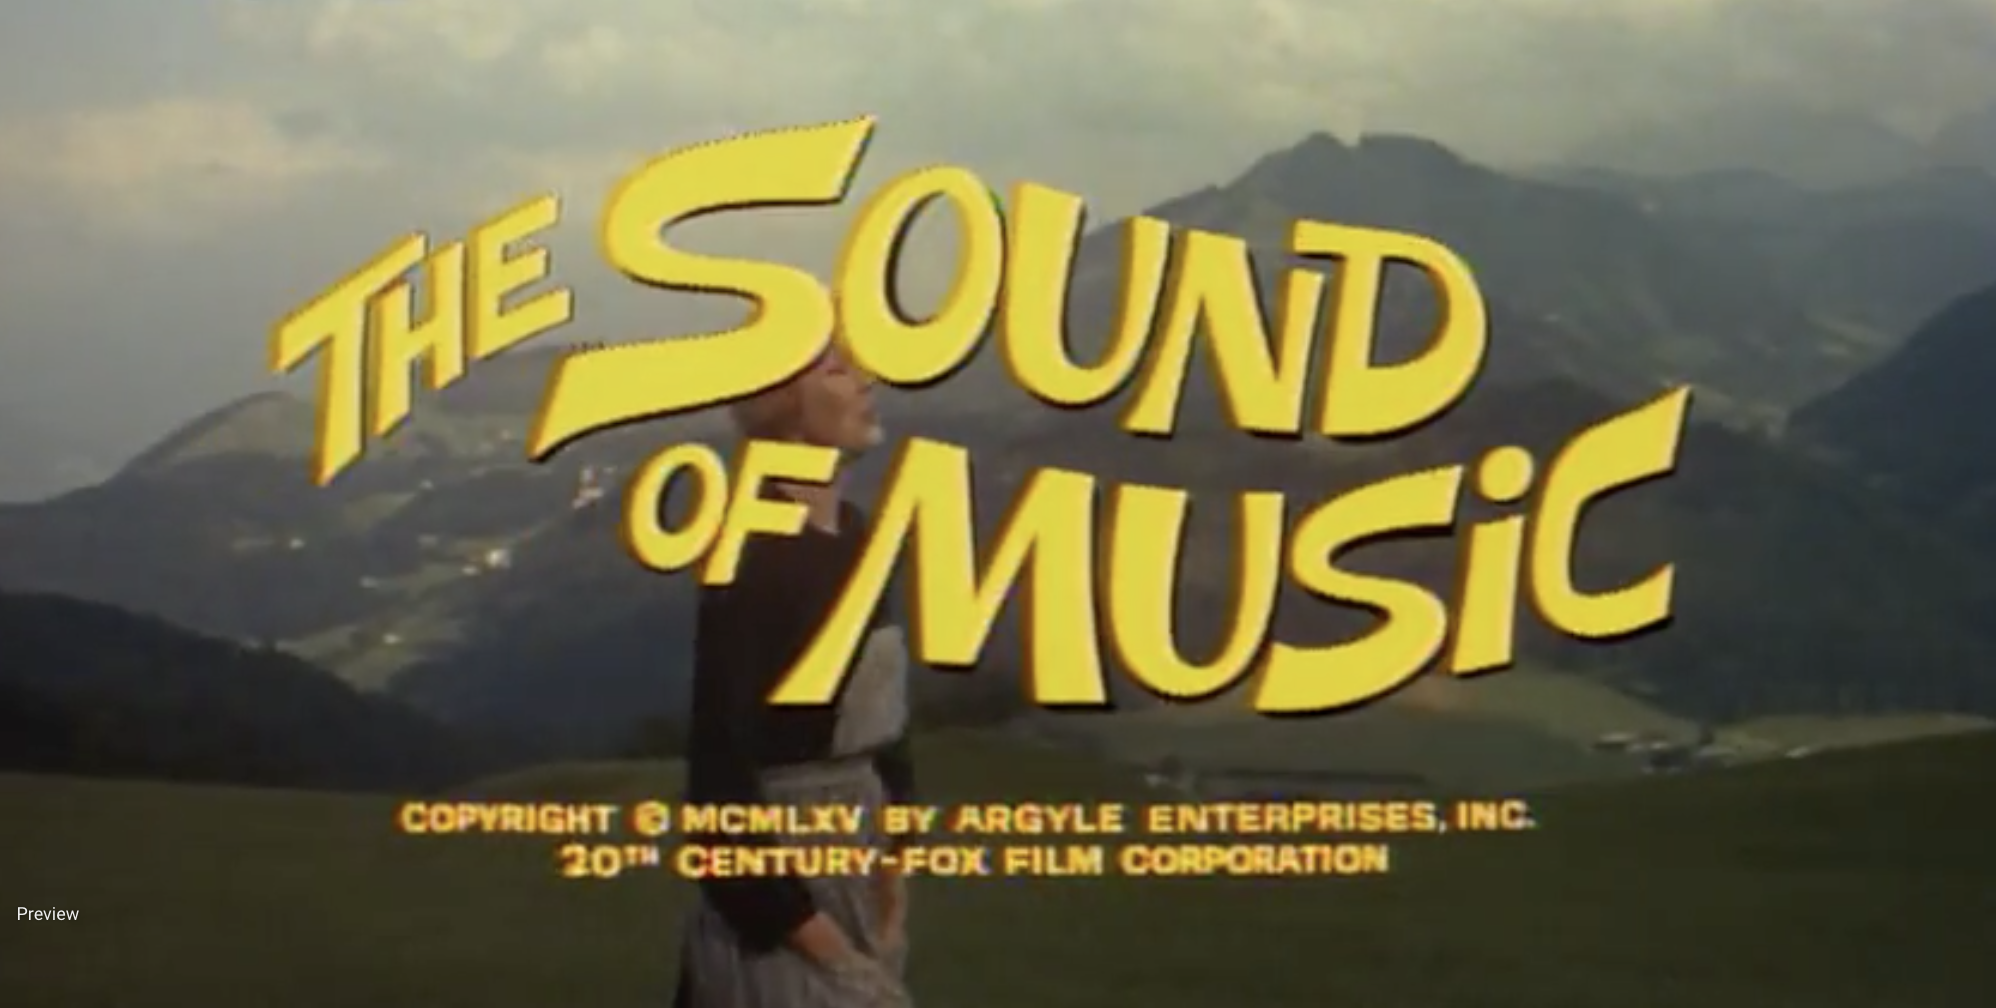 THE SOUND OF MUSIC … requires INDIVIDUAL CLEARANCE & PURCHASE OF RIGHTS TO USE/PLAY annually